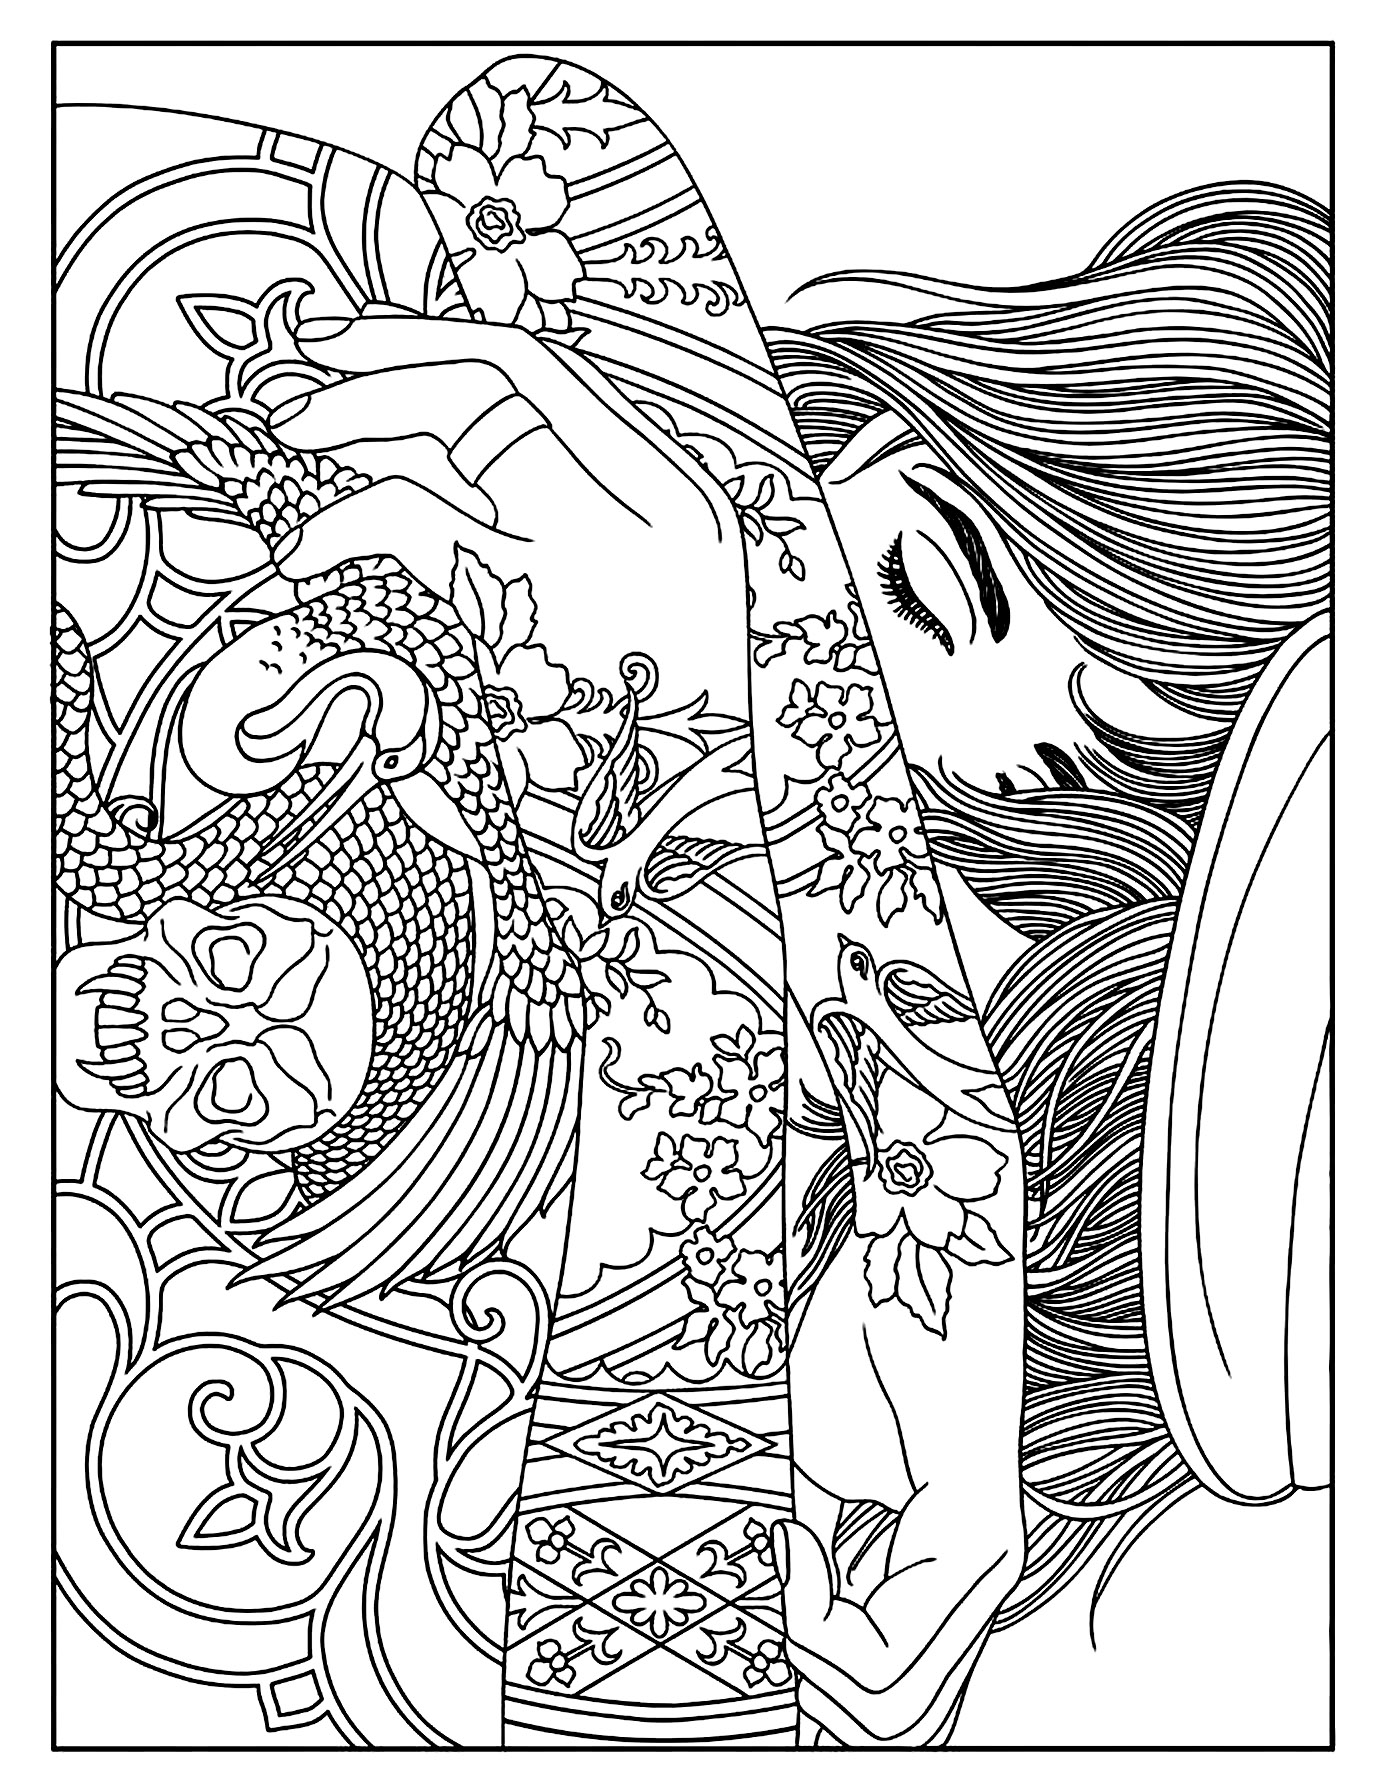 coloring pages for adults women coloring pages for adults women women for coloring adults pages